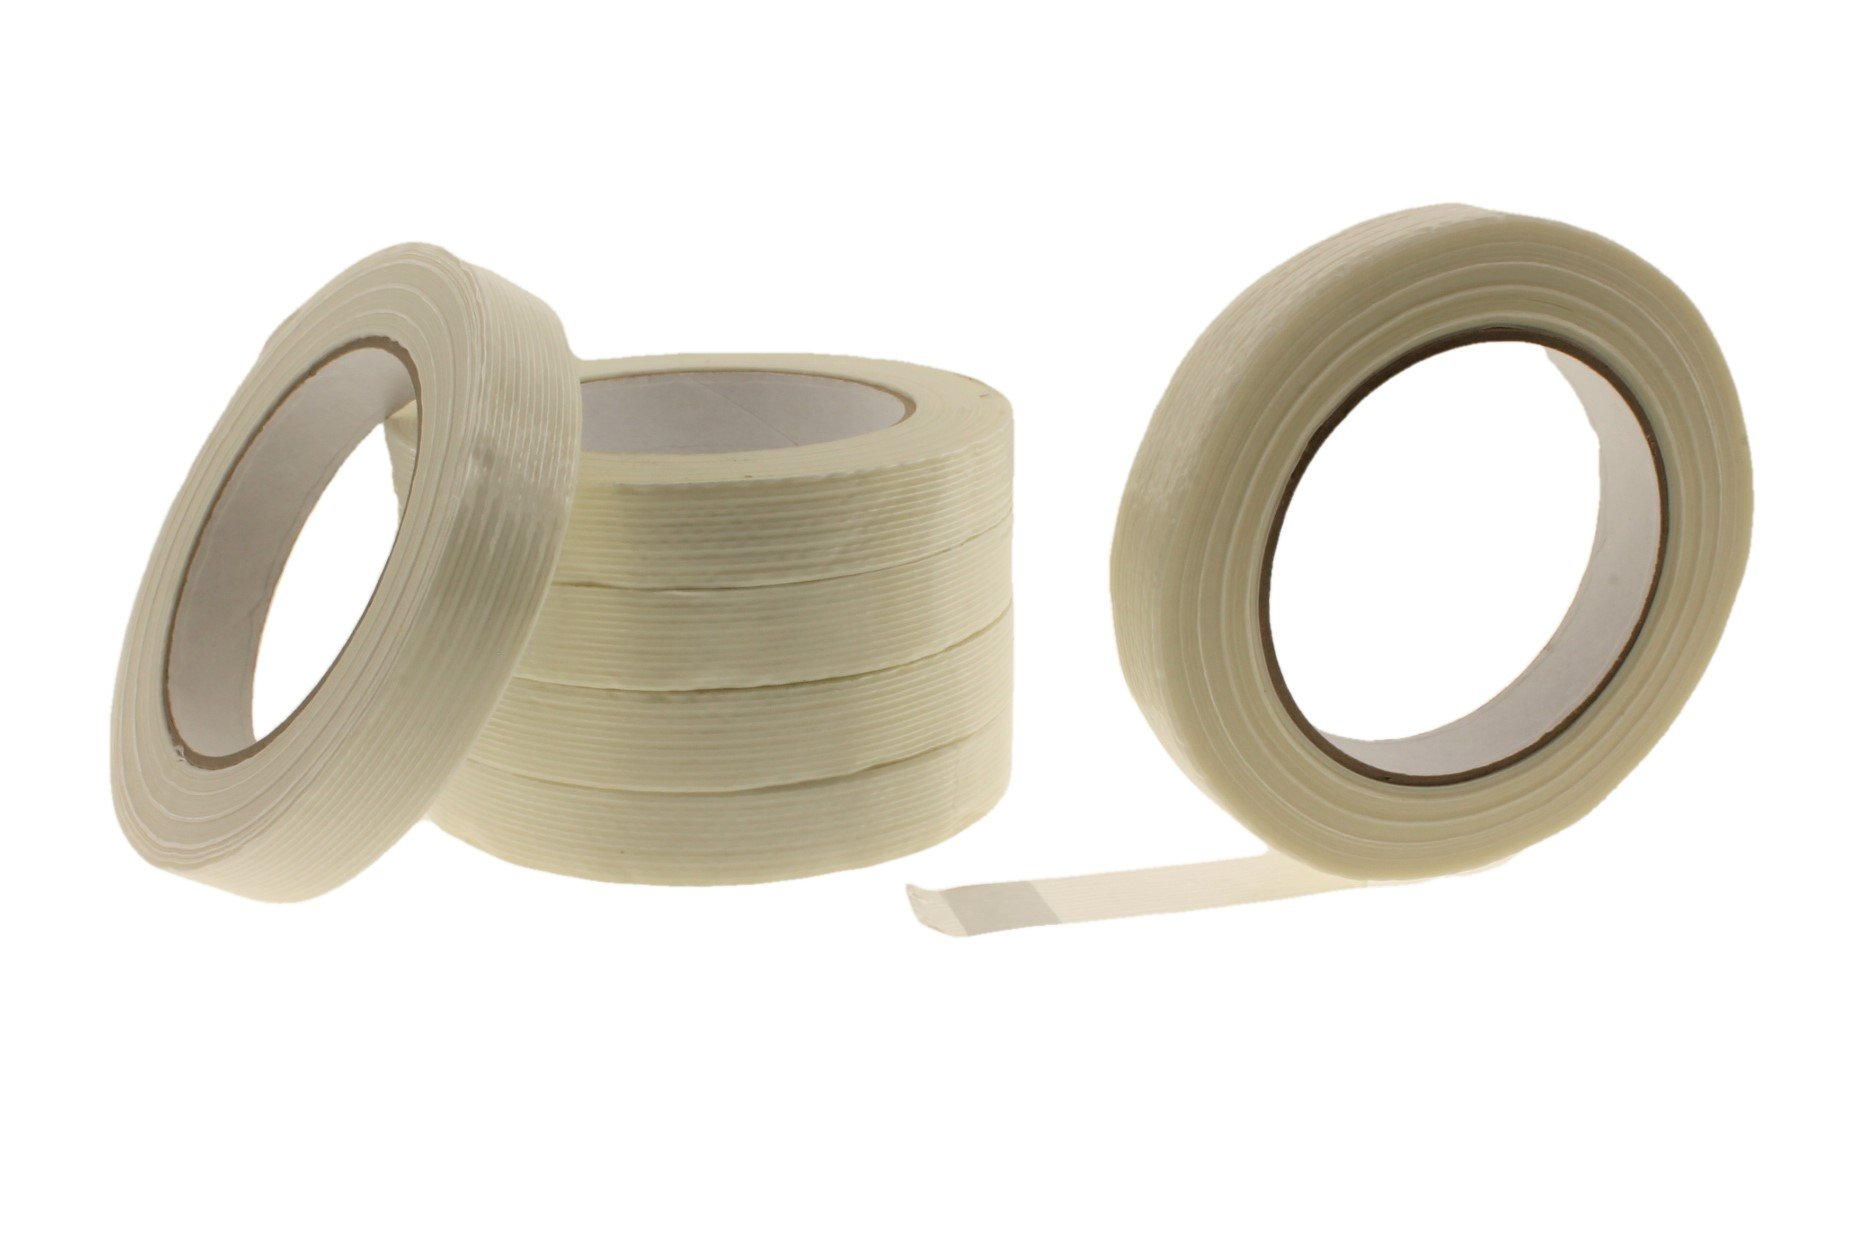 6pk 3/4'' in Filament Strapping Tape Medium Duty 125 lb. Fiberglass Glass Strand Reinforced Tape 4.3 Mil Packing Bundling Steel Concrete Palletizing Holding Moving .75 inch 18 MM